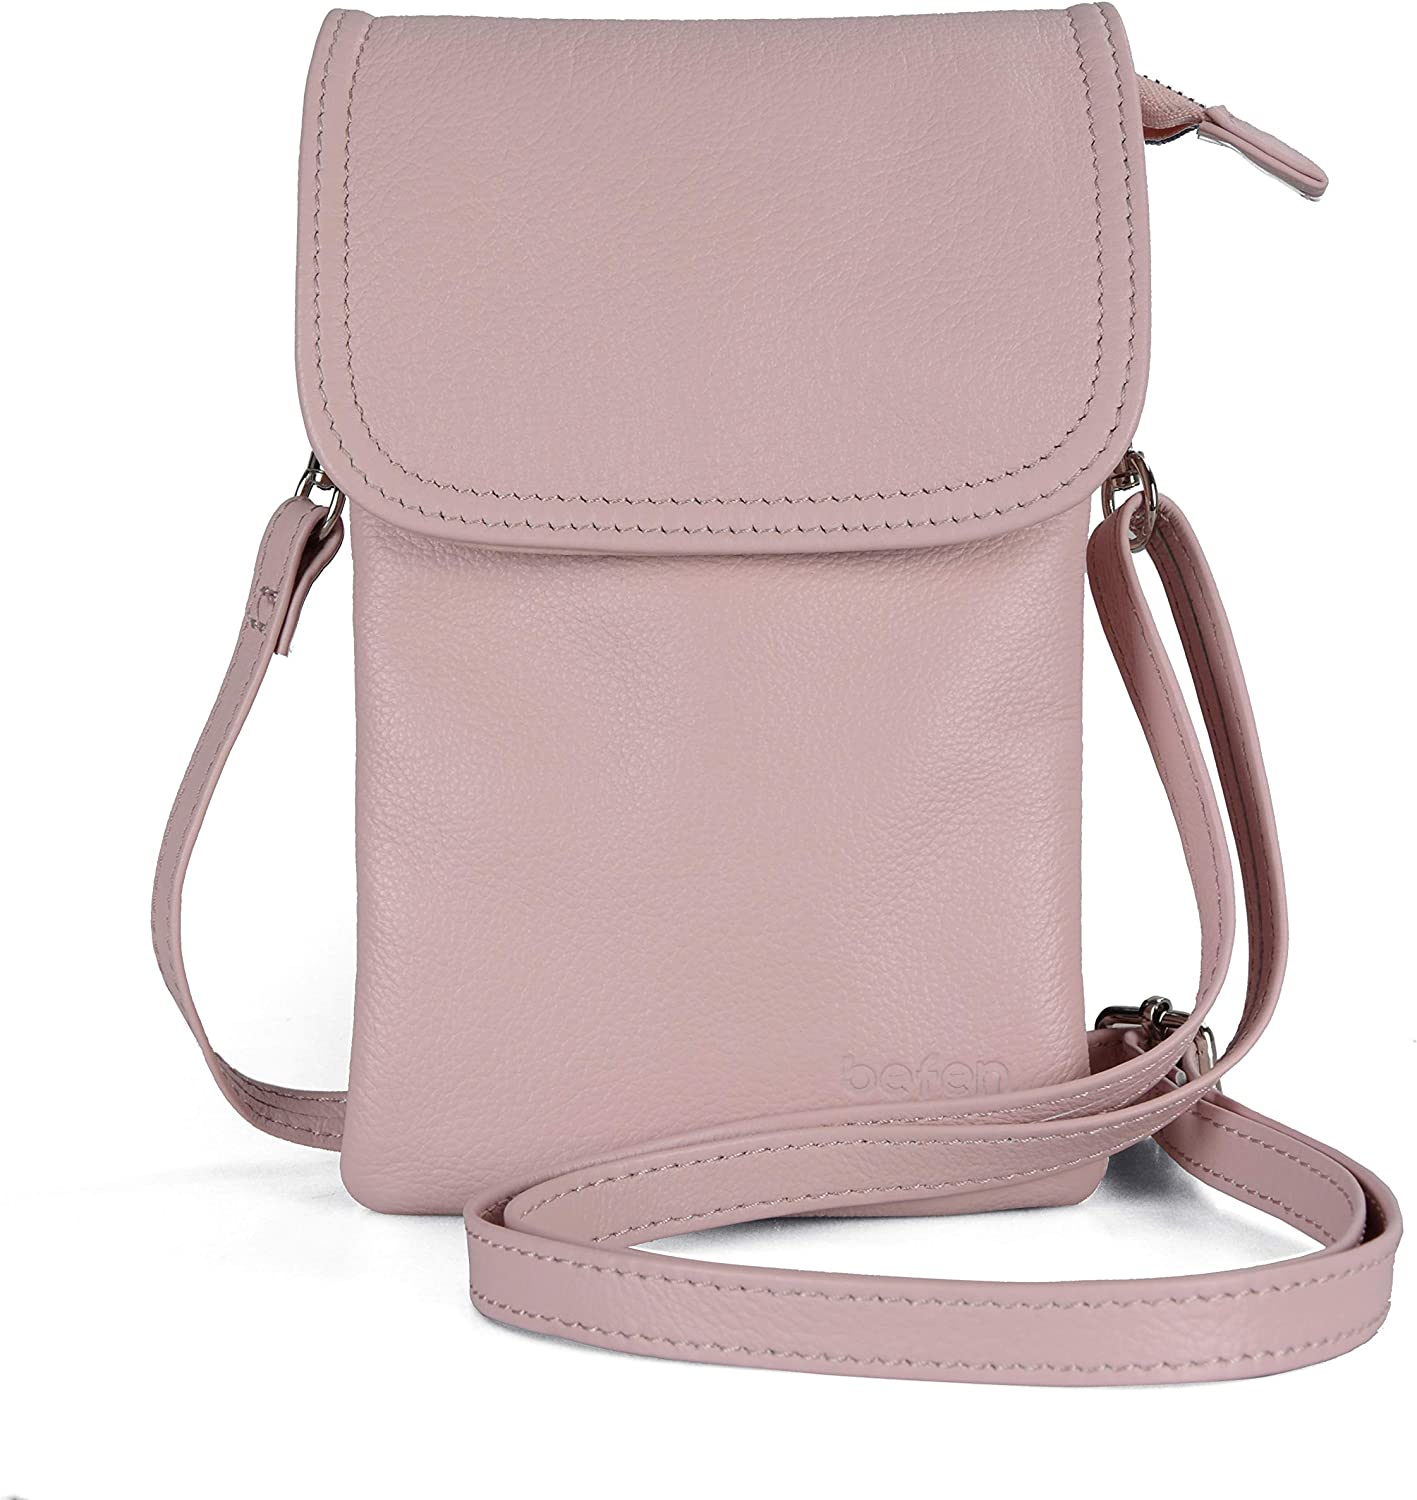 Women Small Crossbody Bag Fit iPhone Xs Max Befen Leather Cell Phone Crossbody Wallet Purse